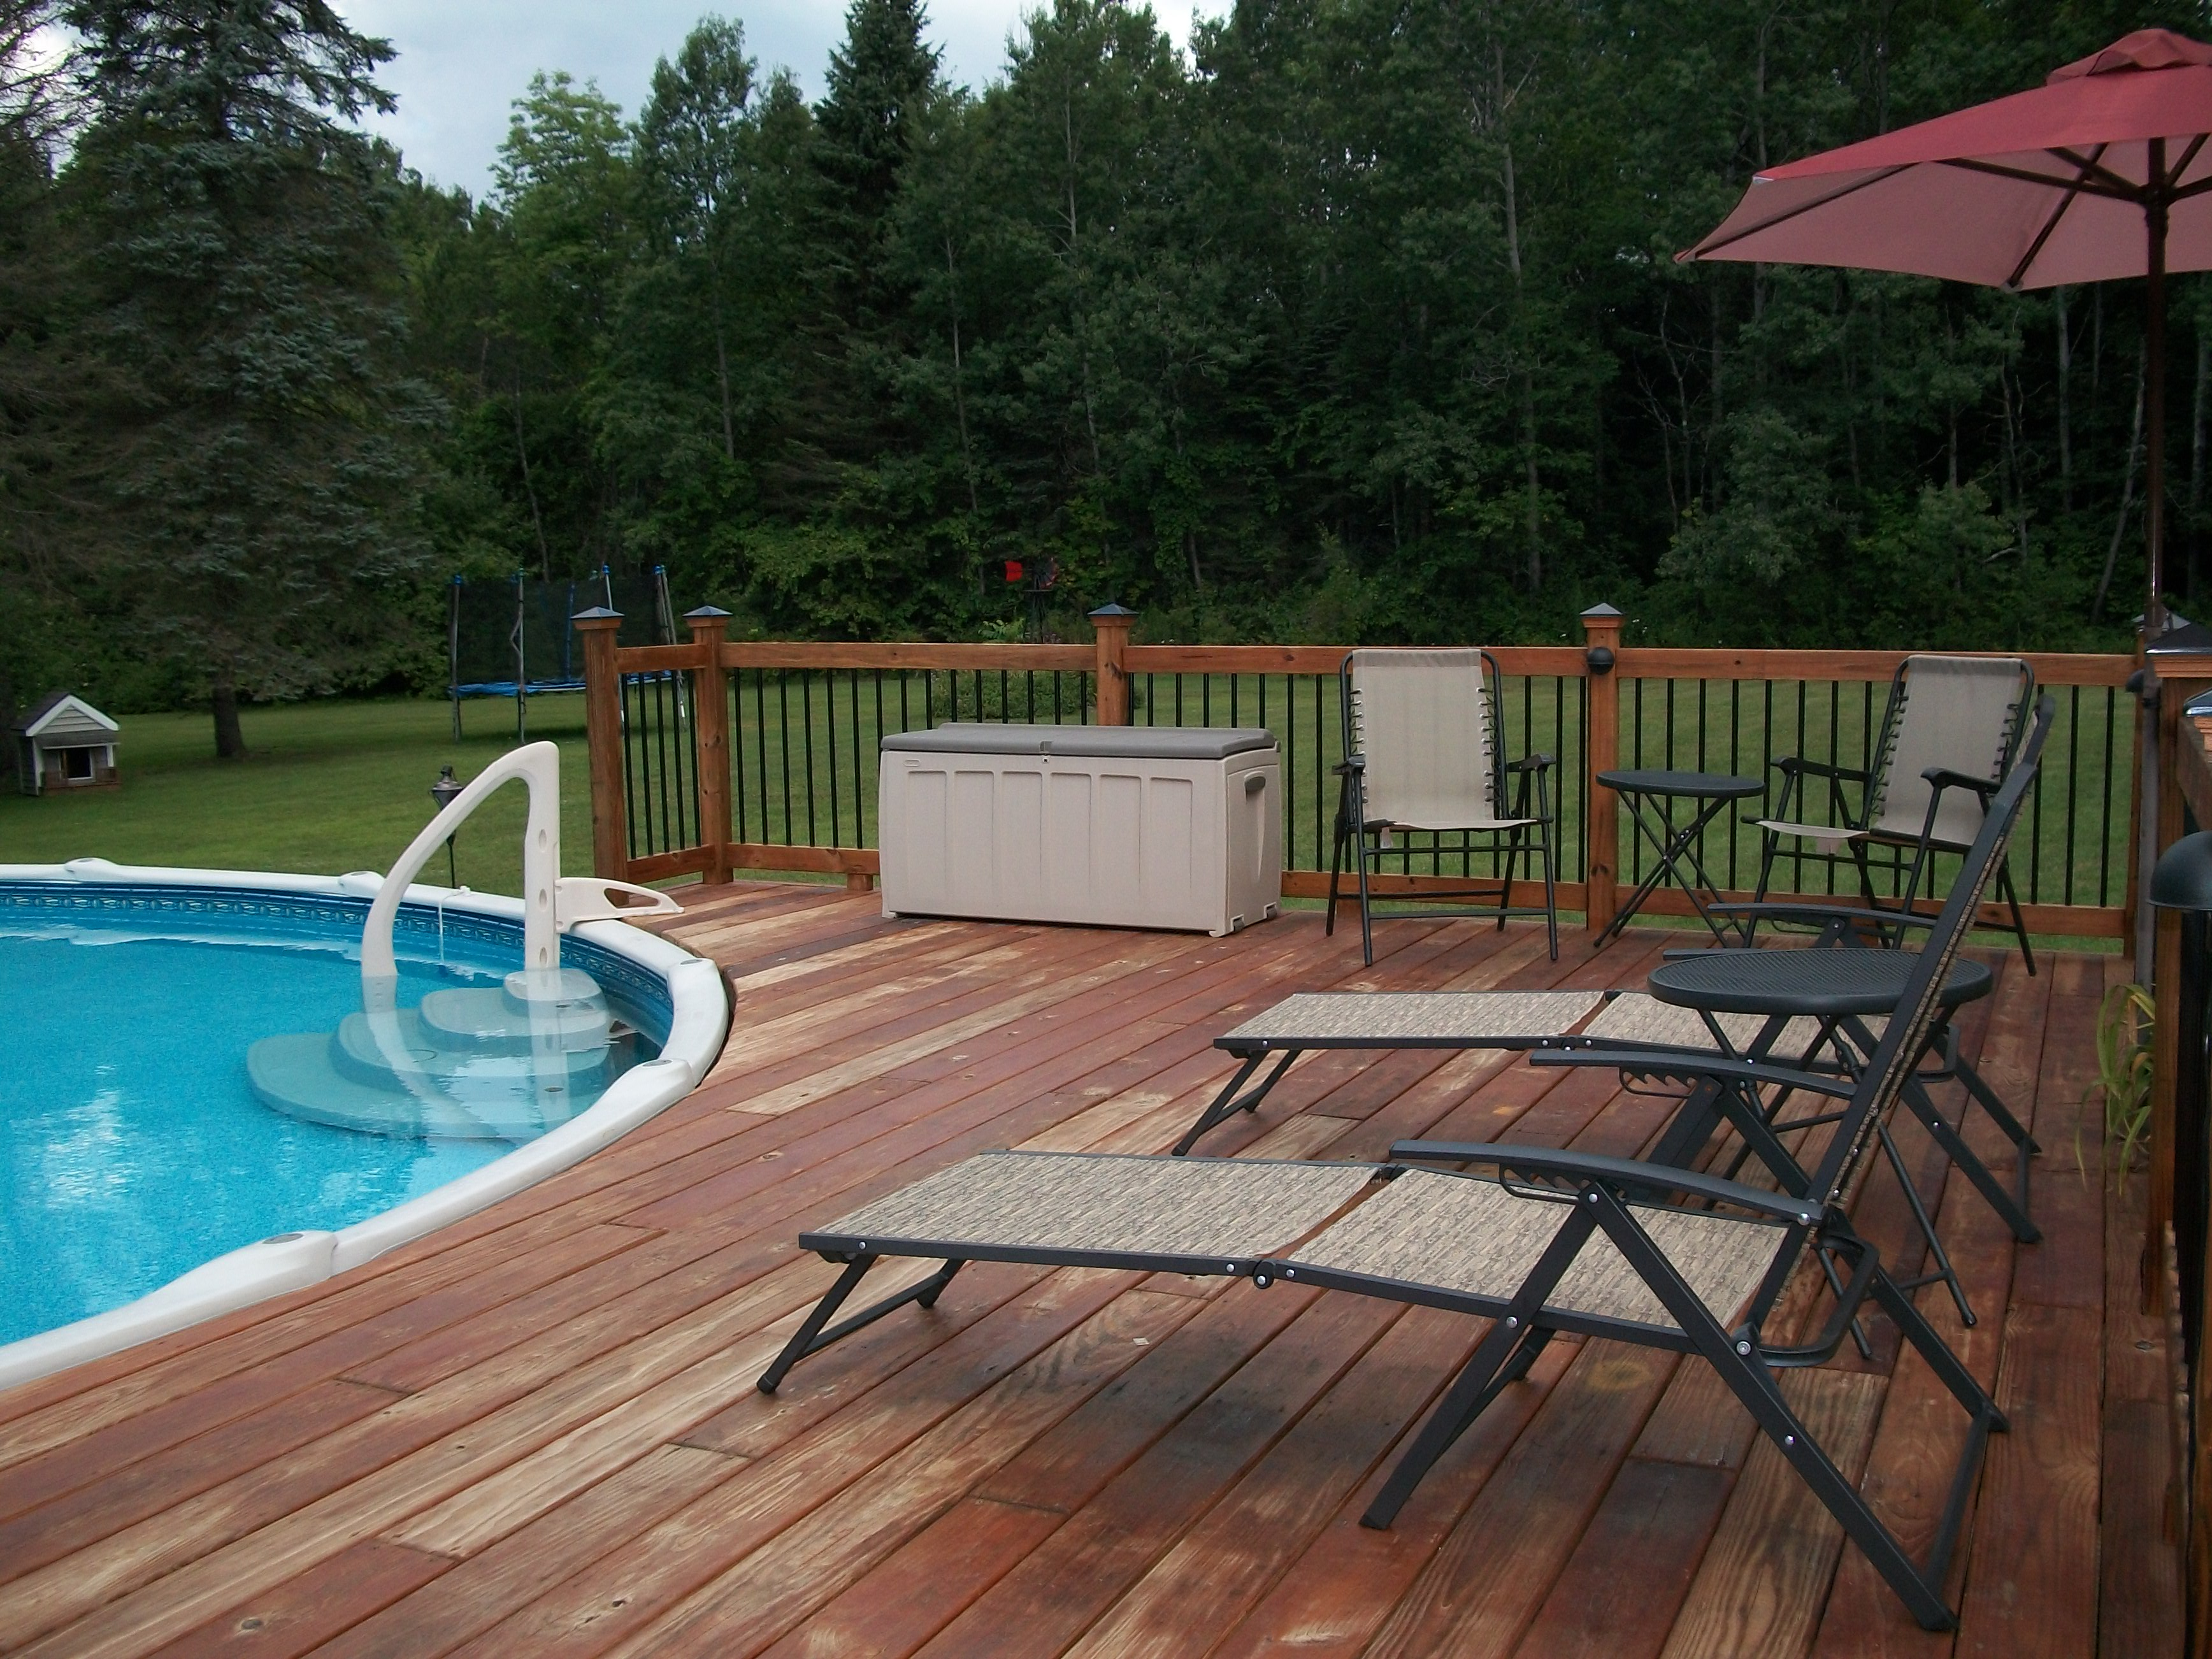 Outdoor Living | Patriot Construction of Upstate New York ... on Patriot Outdoor Living id=91755